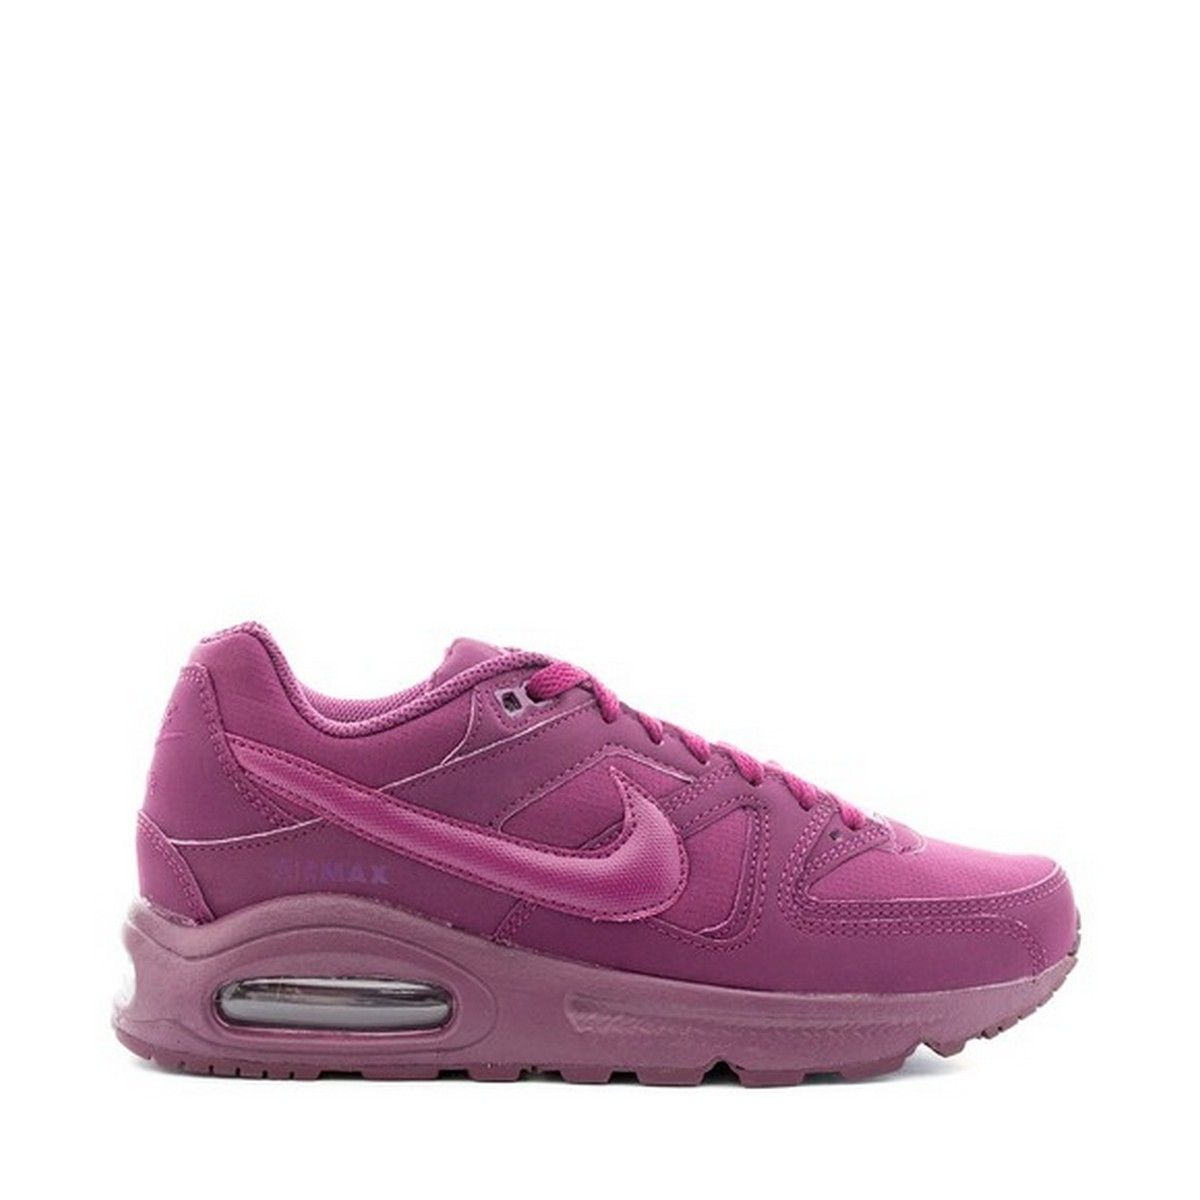 best loved 4f989 682f6 ... canada wmns air max command 397690 555 sport vision 86180 e78b6